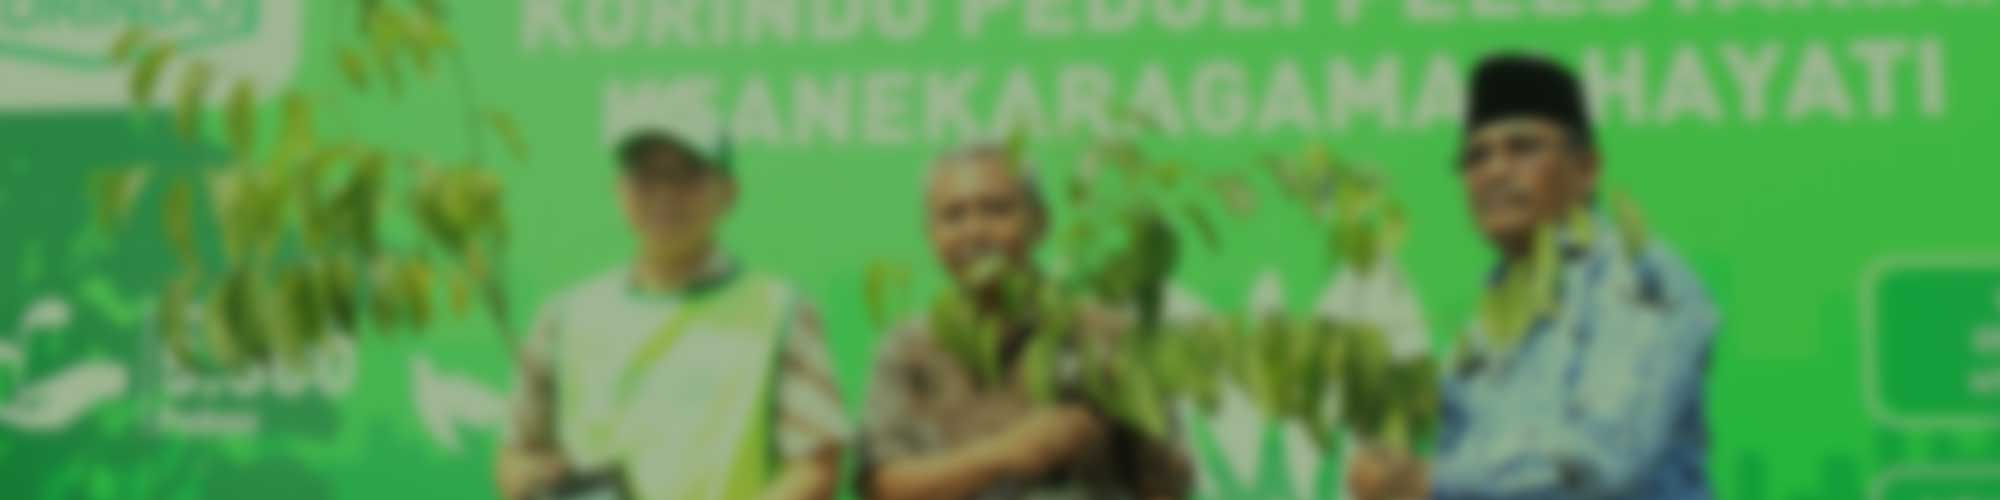 Korindo Carries Out Greening Action in Jakarta